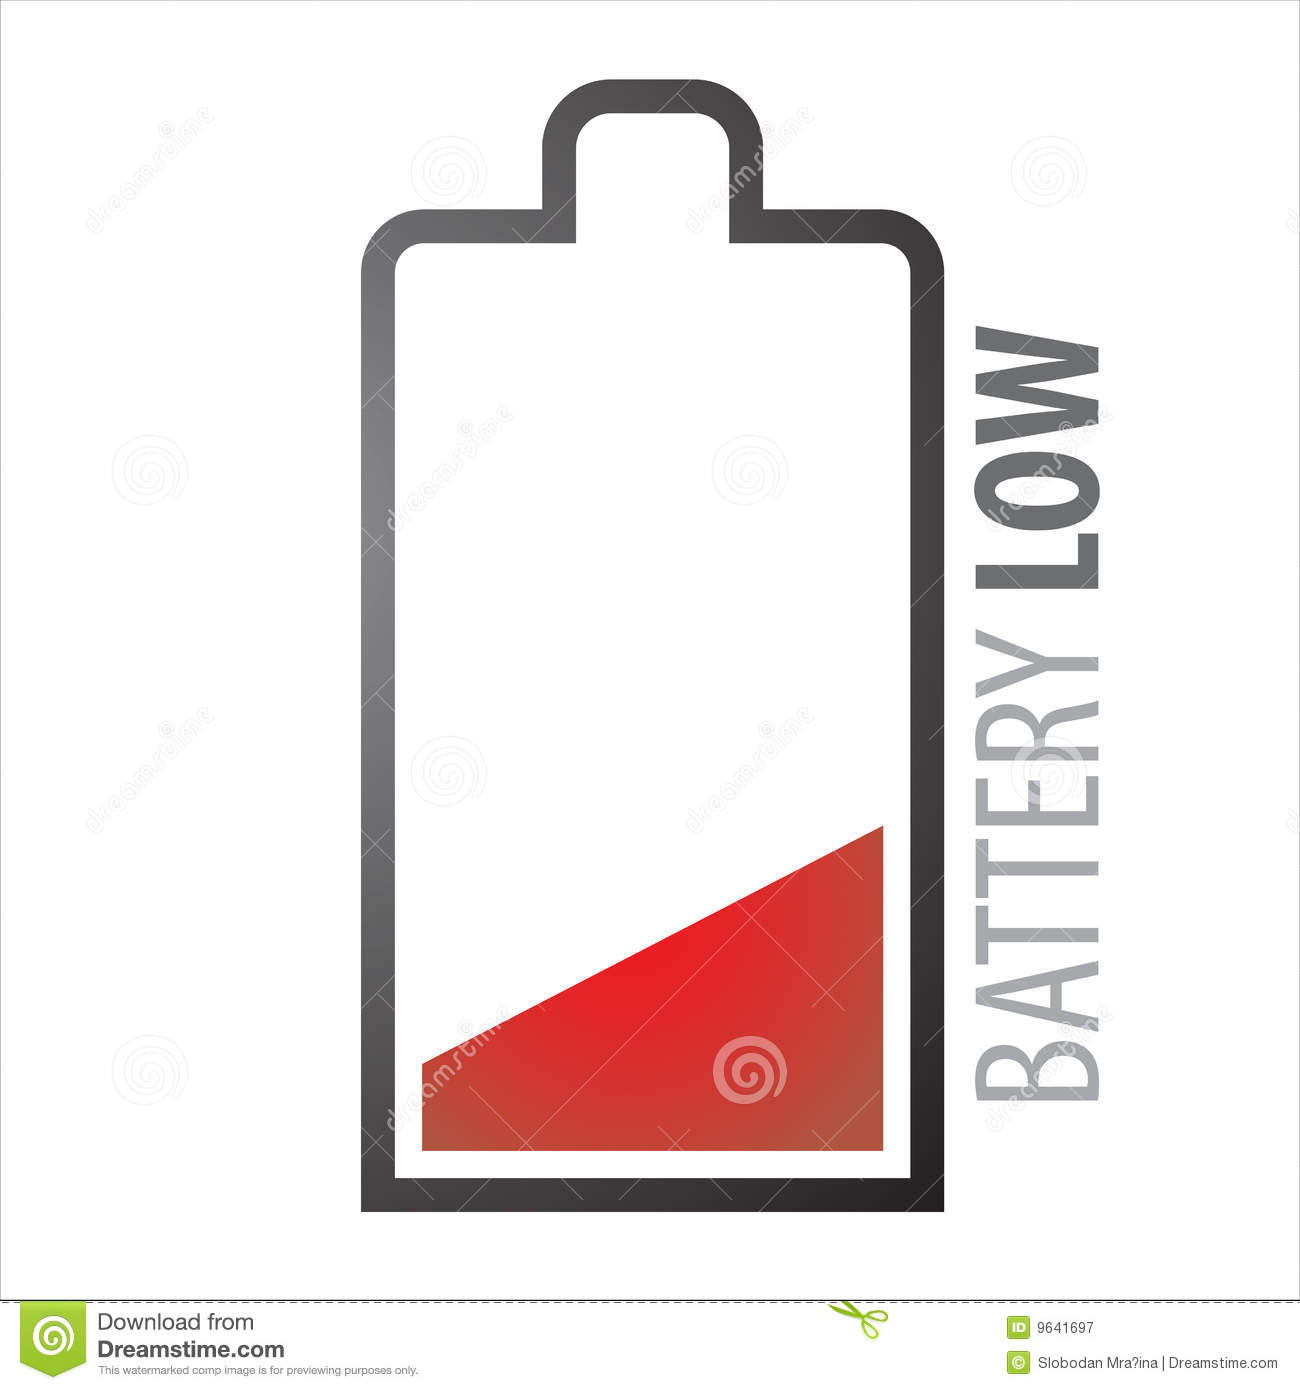 Battery Low Royalty Free Stock Photography Image 9641697